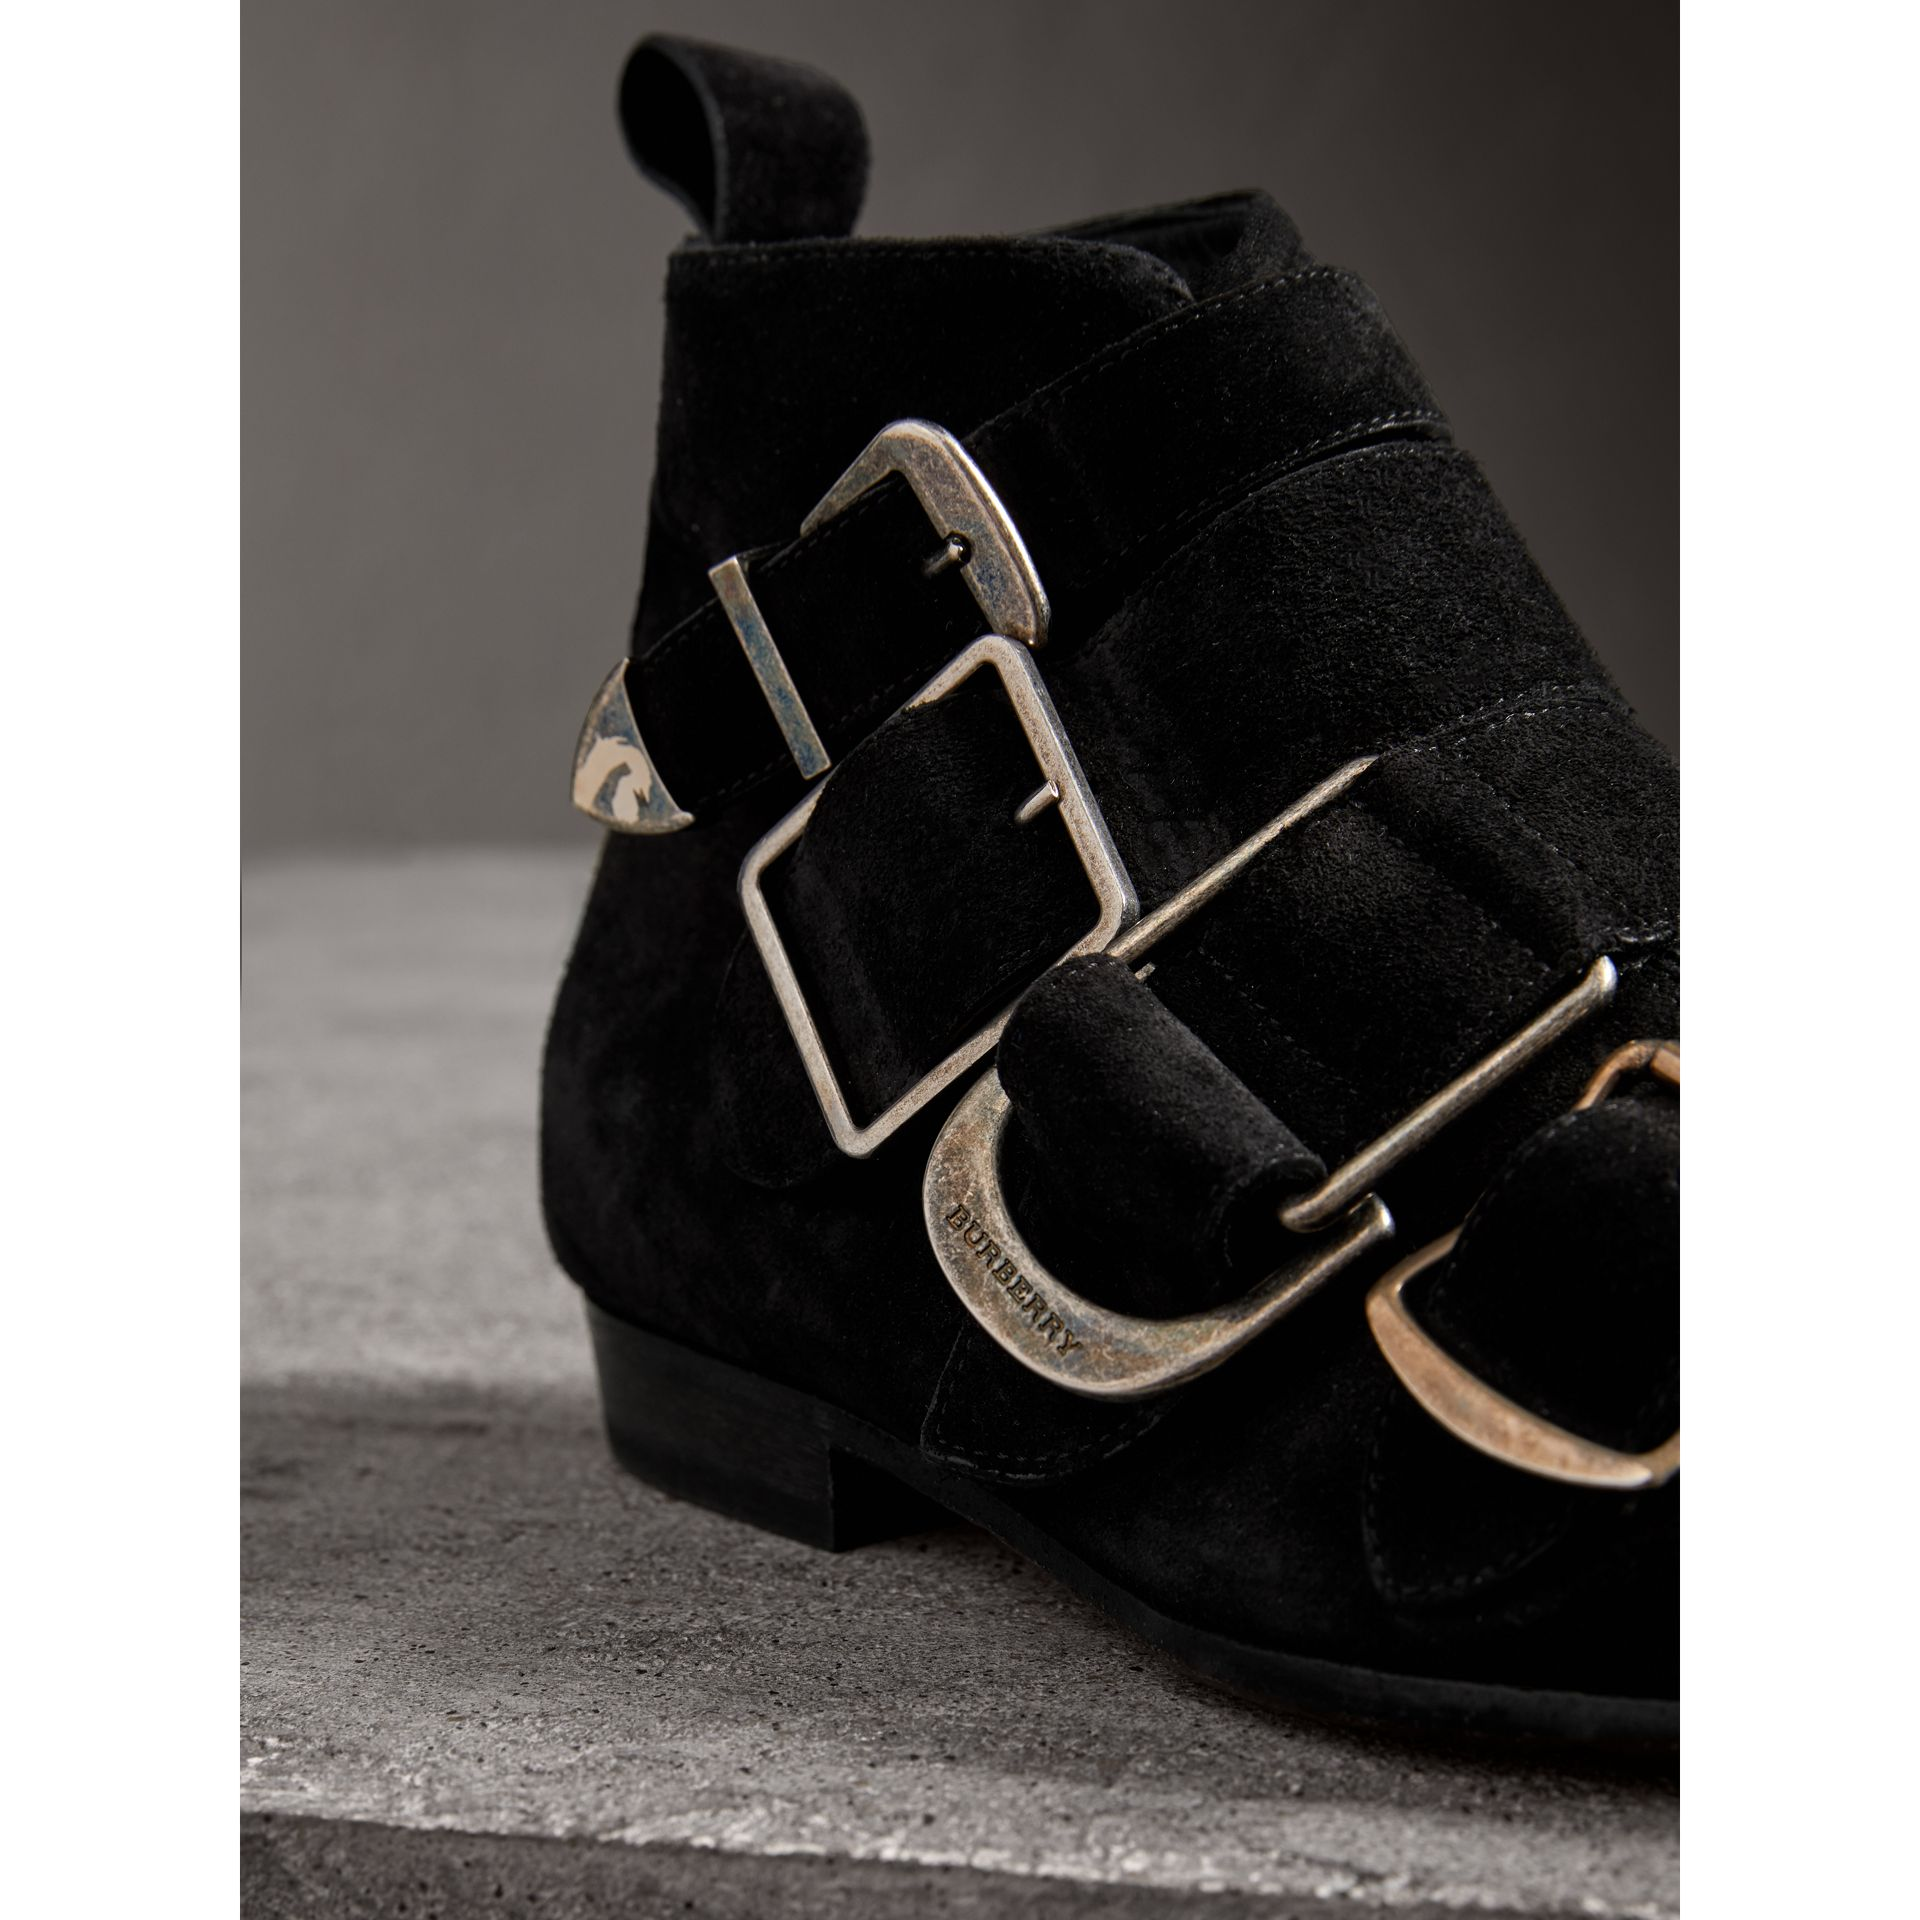 Bottines en cuir velours avec boucles (Noir) - Femme | Burberry Canada - photo de la galerie 1